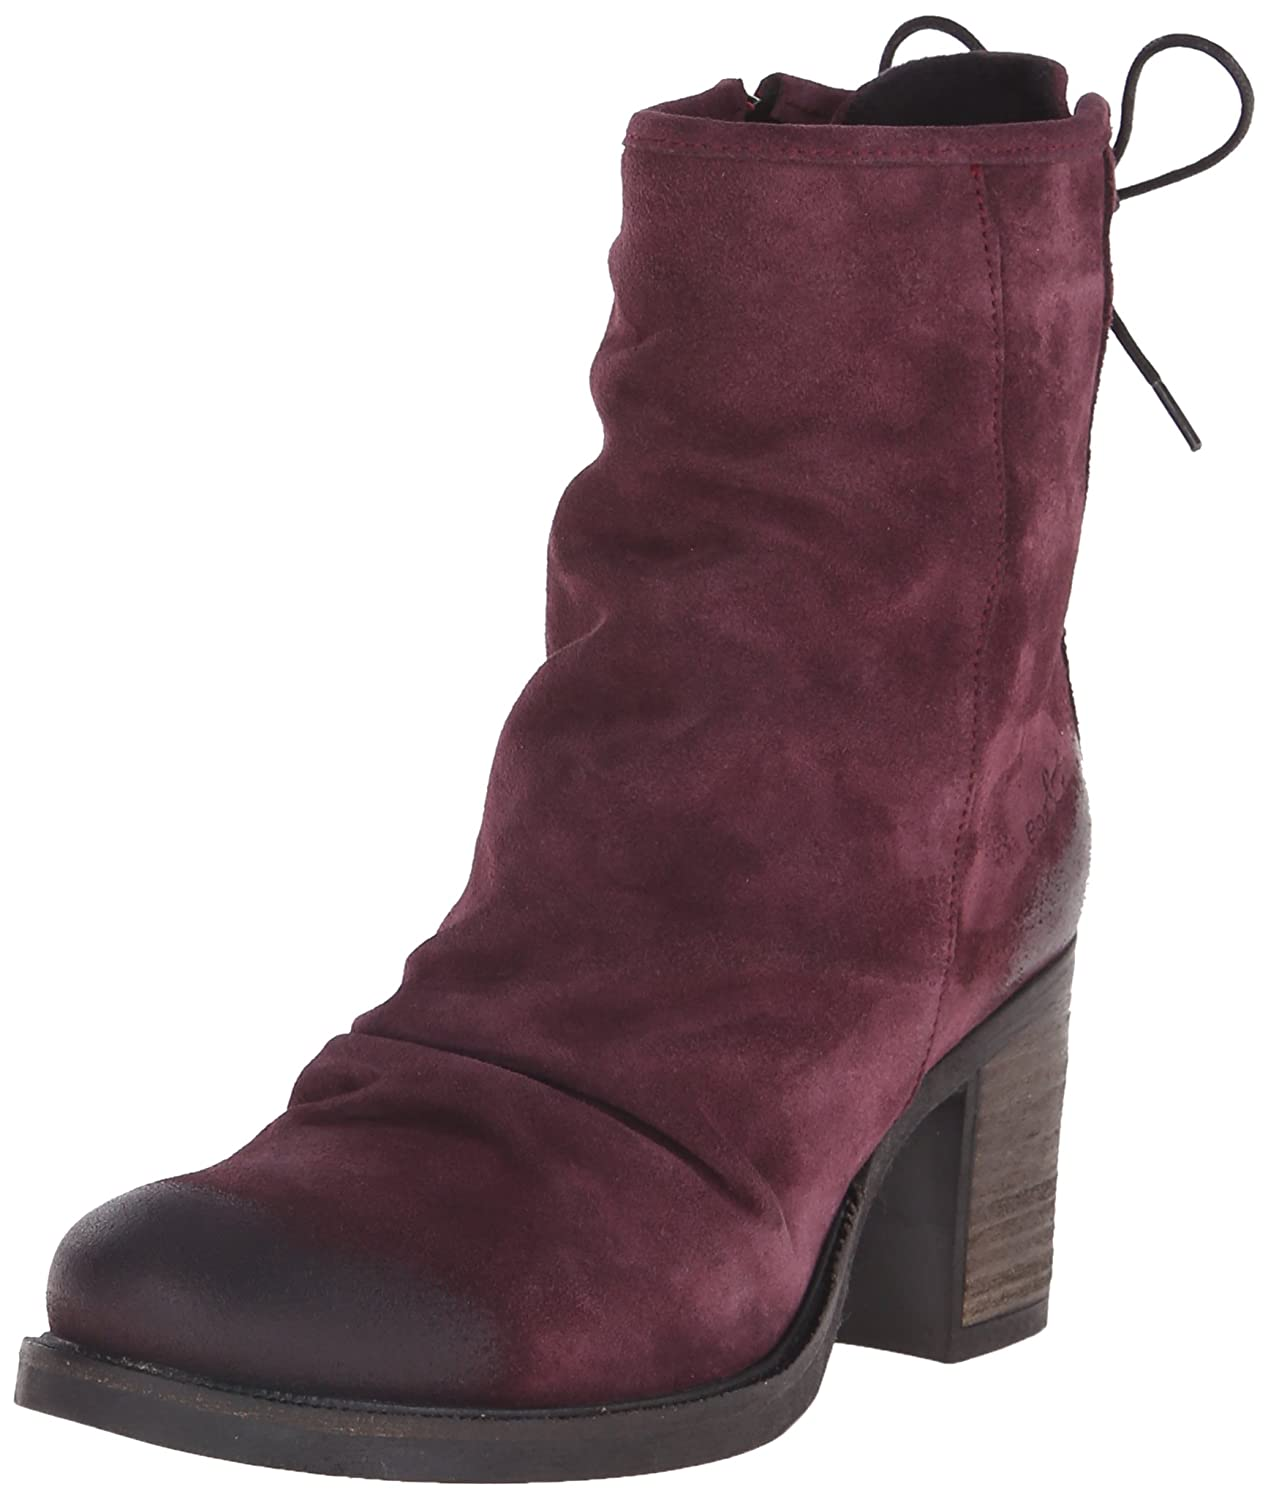 Bos. & Co. Women's Barlow Boot B00VMUP4IK 38 EU/7-7.5 M US|Plum